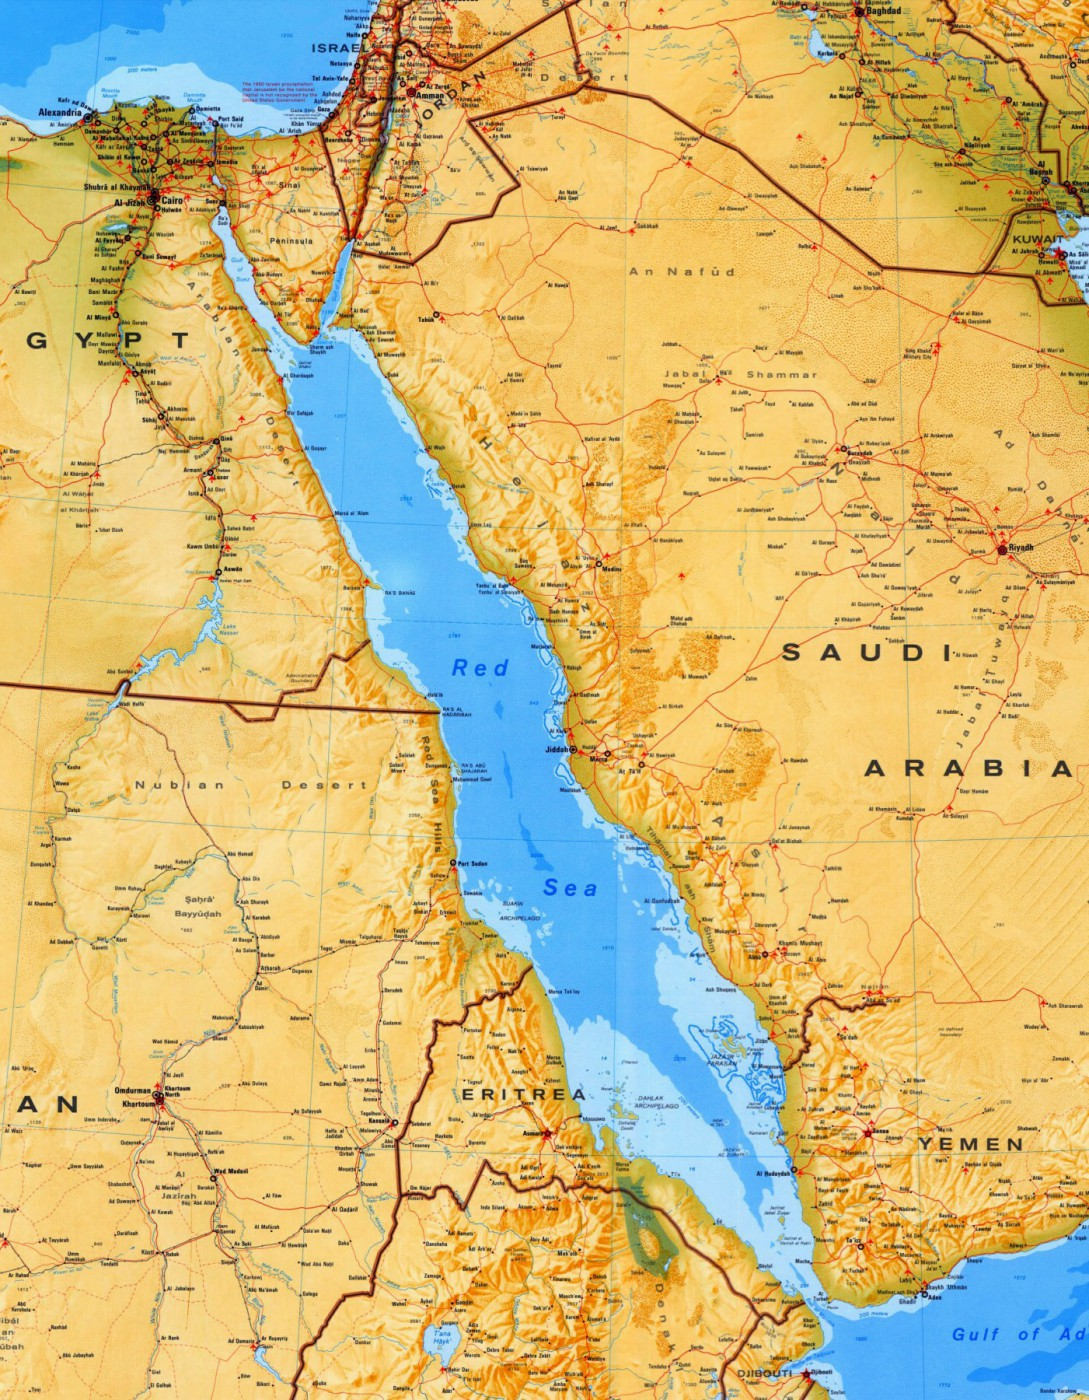 The Red Sea Map - Egypt Tours Portal